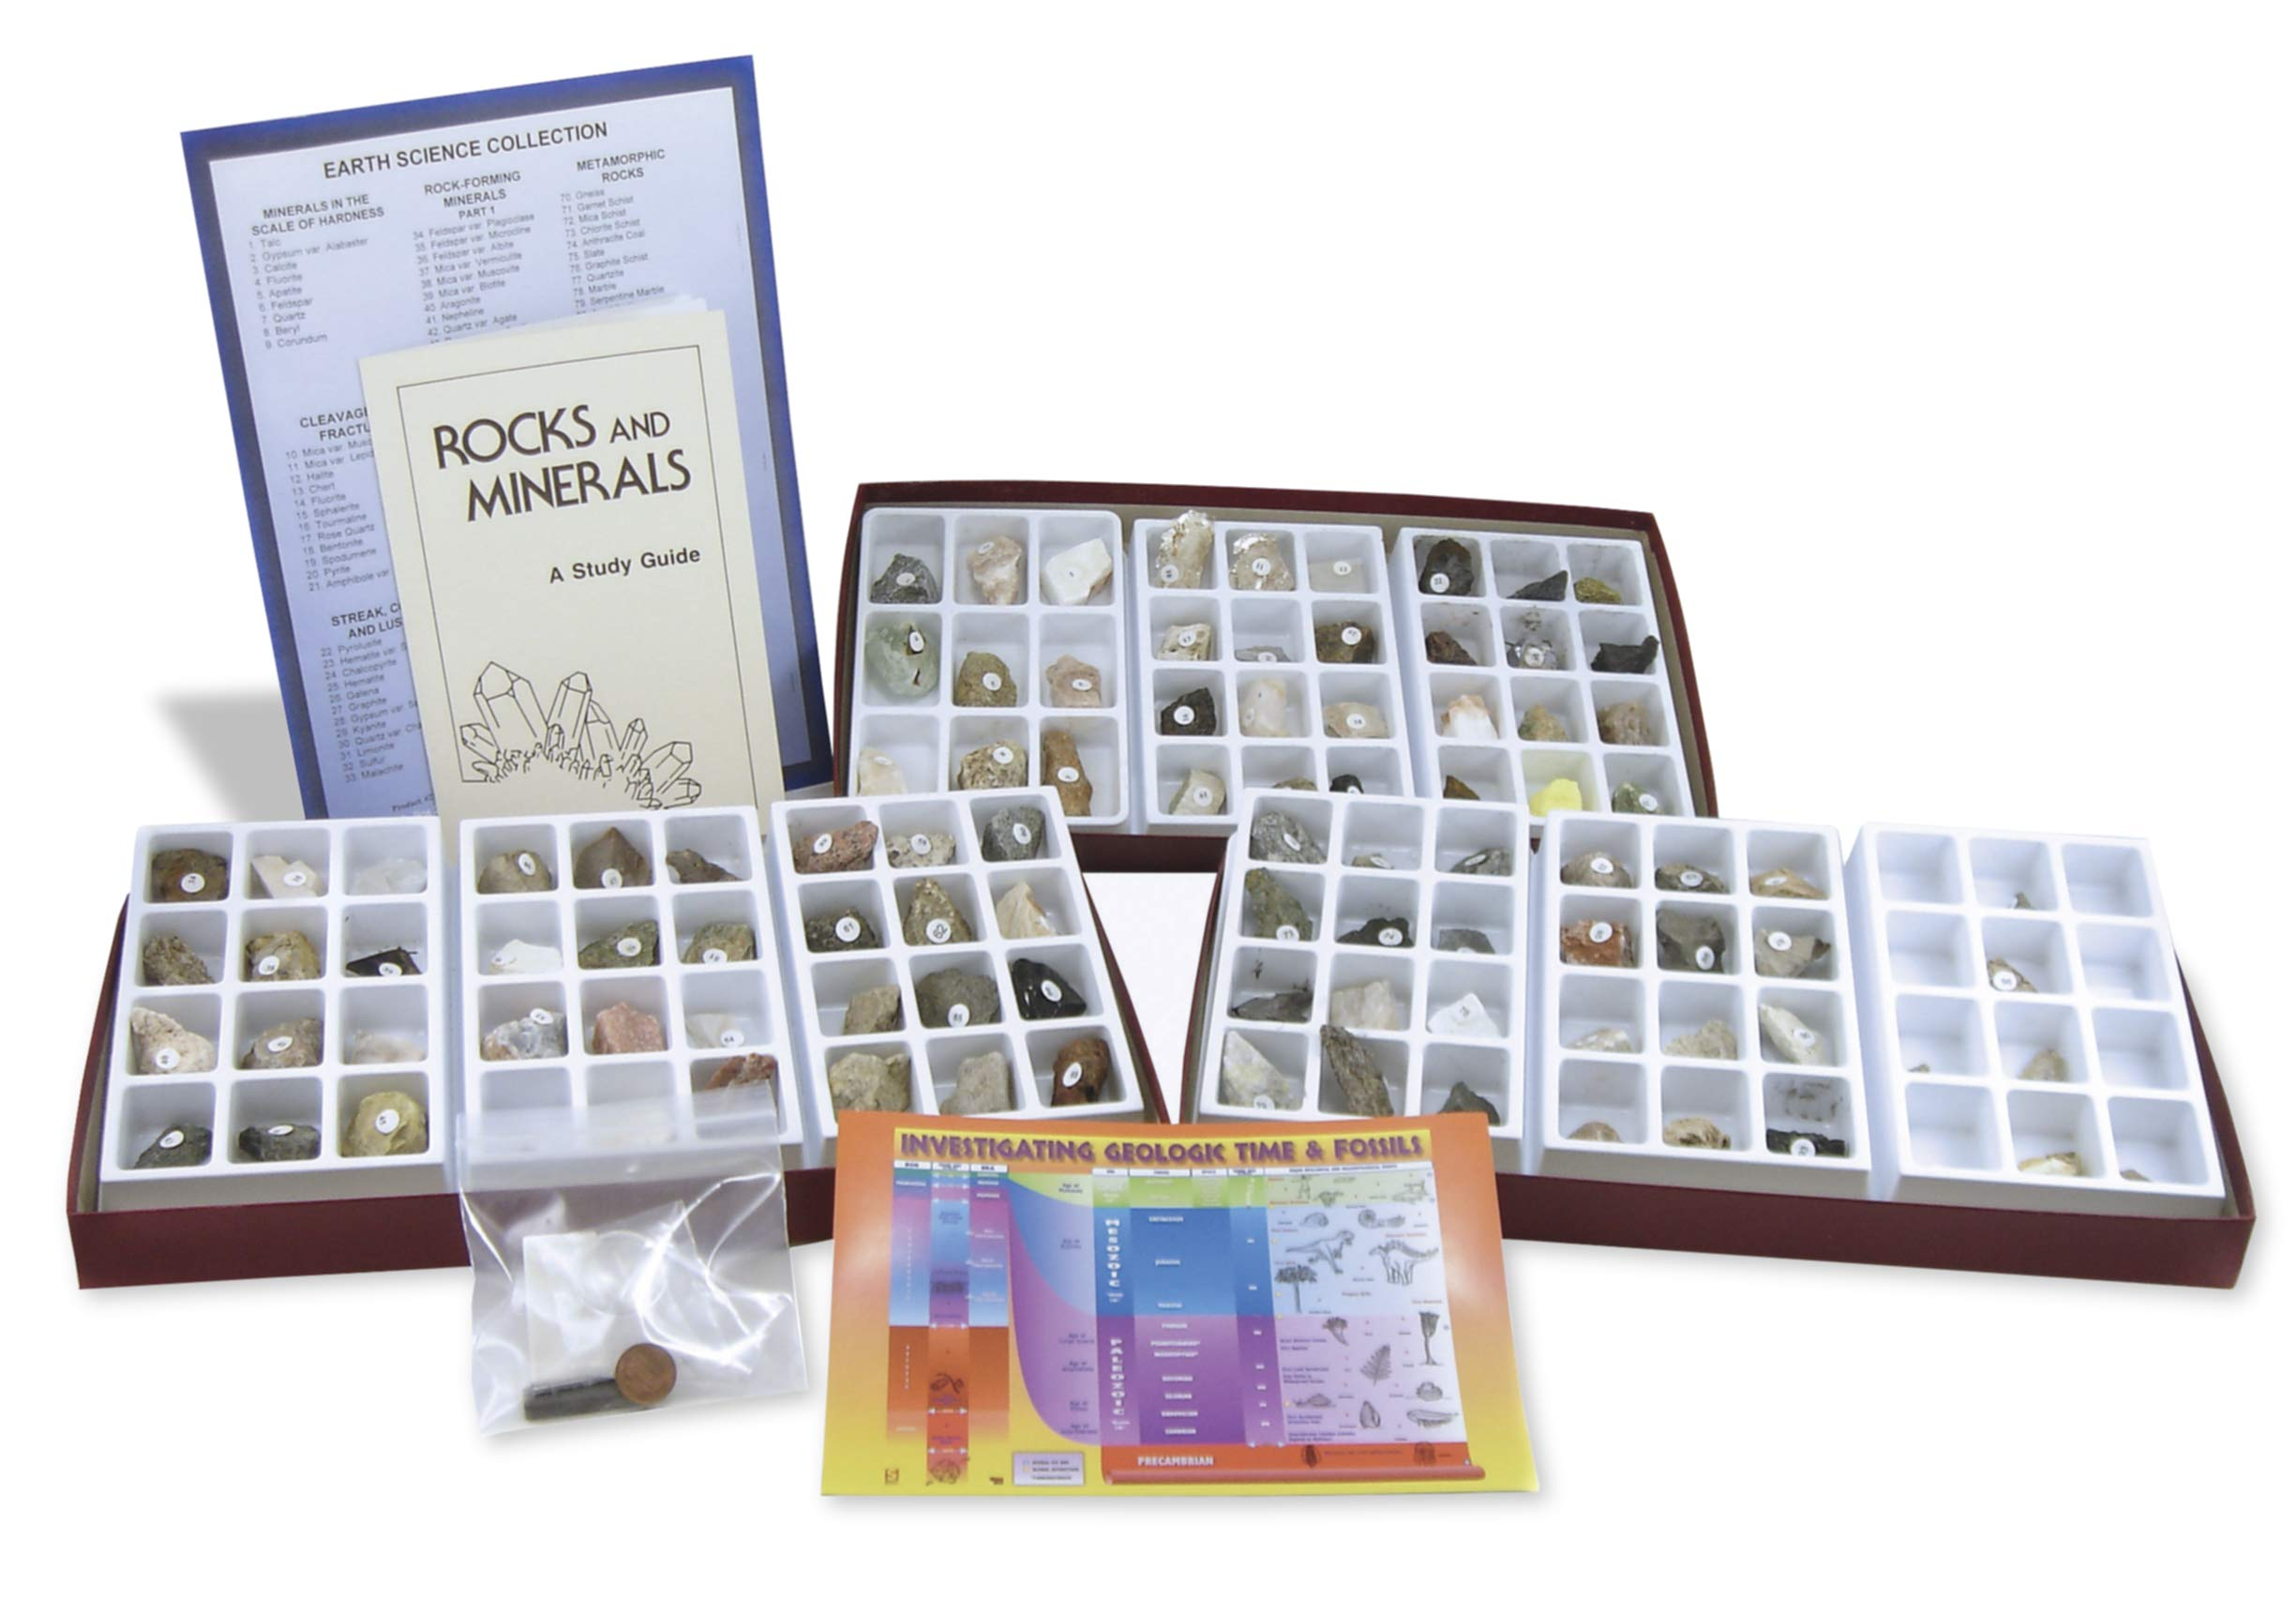 American Educational Advanced Earth Science Collection